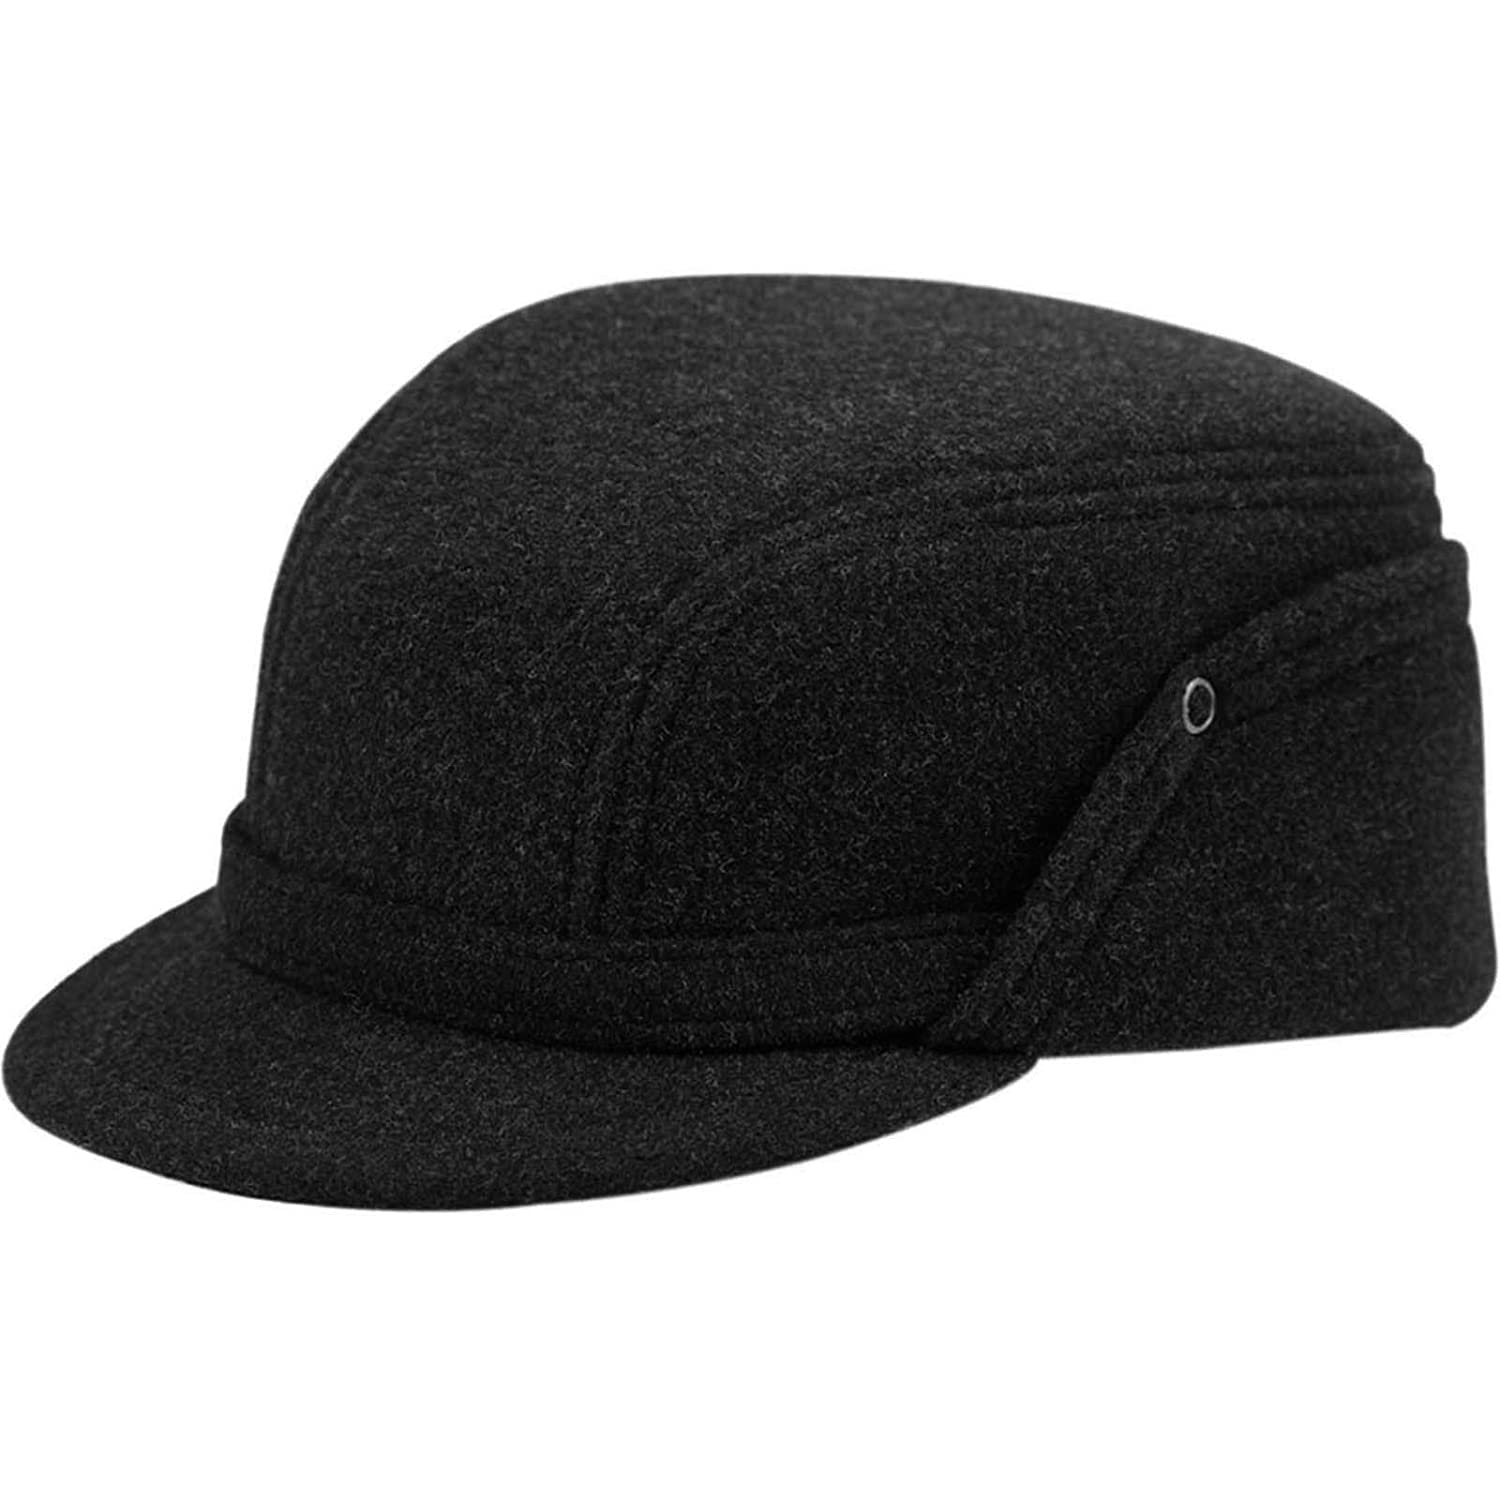 8a2c0153b97 Wool Fleece Winter Working Cap with Ear Flap at Amazon Men s Clothing store